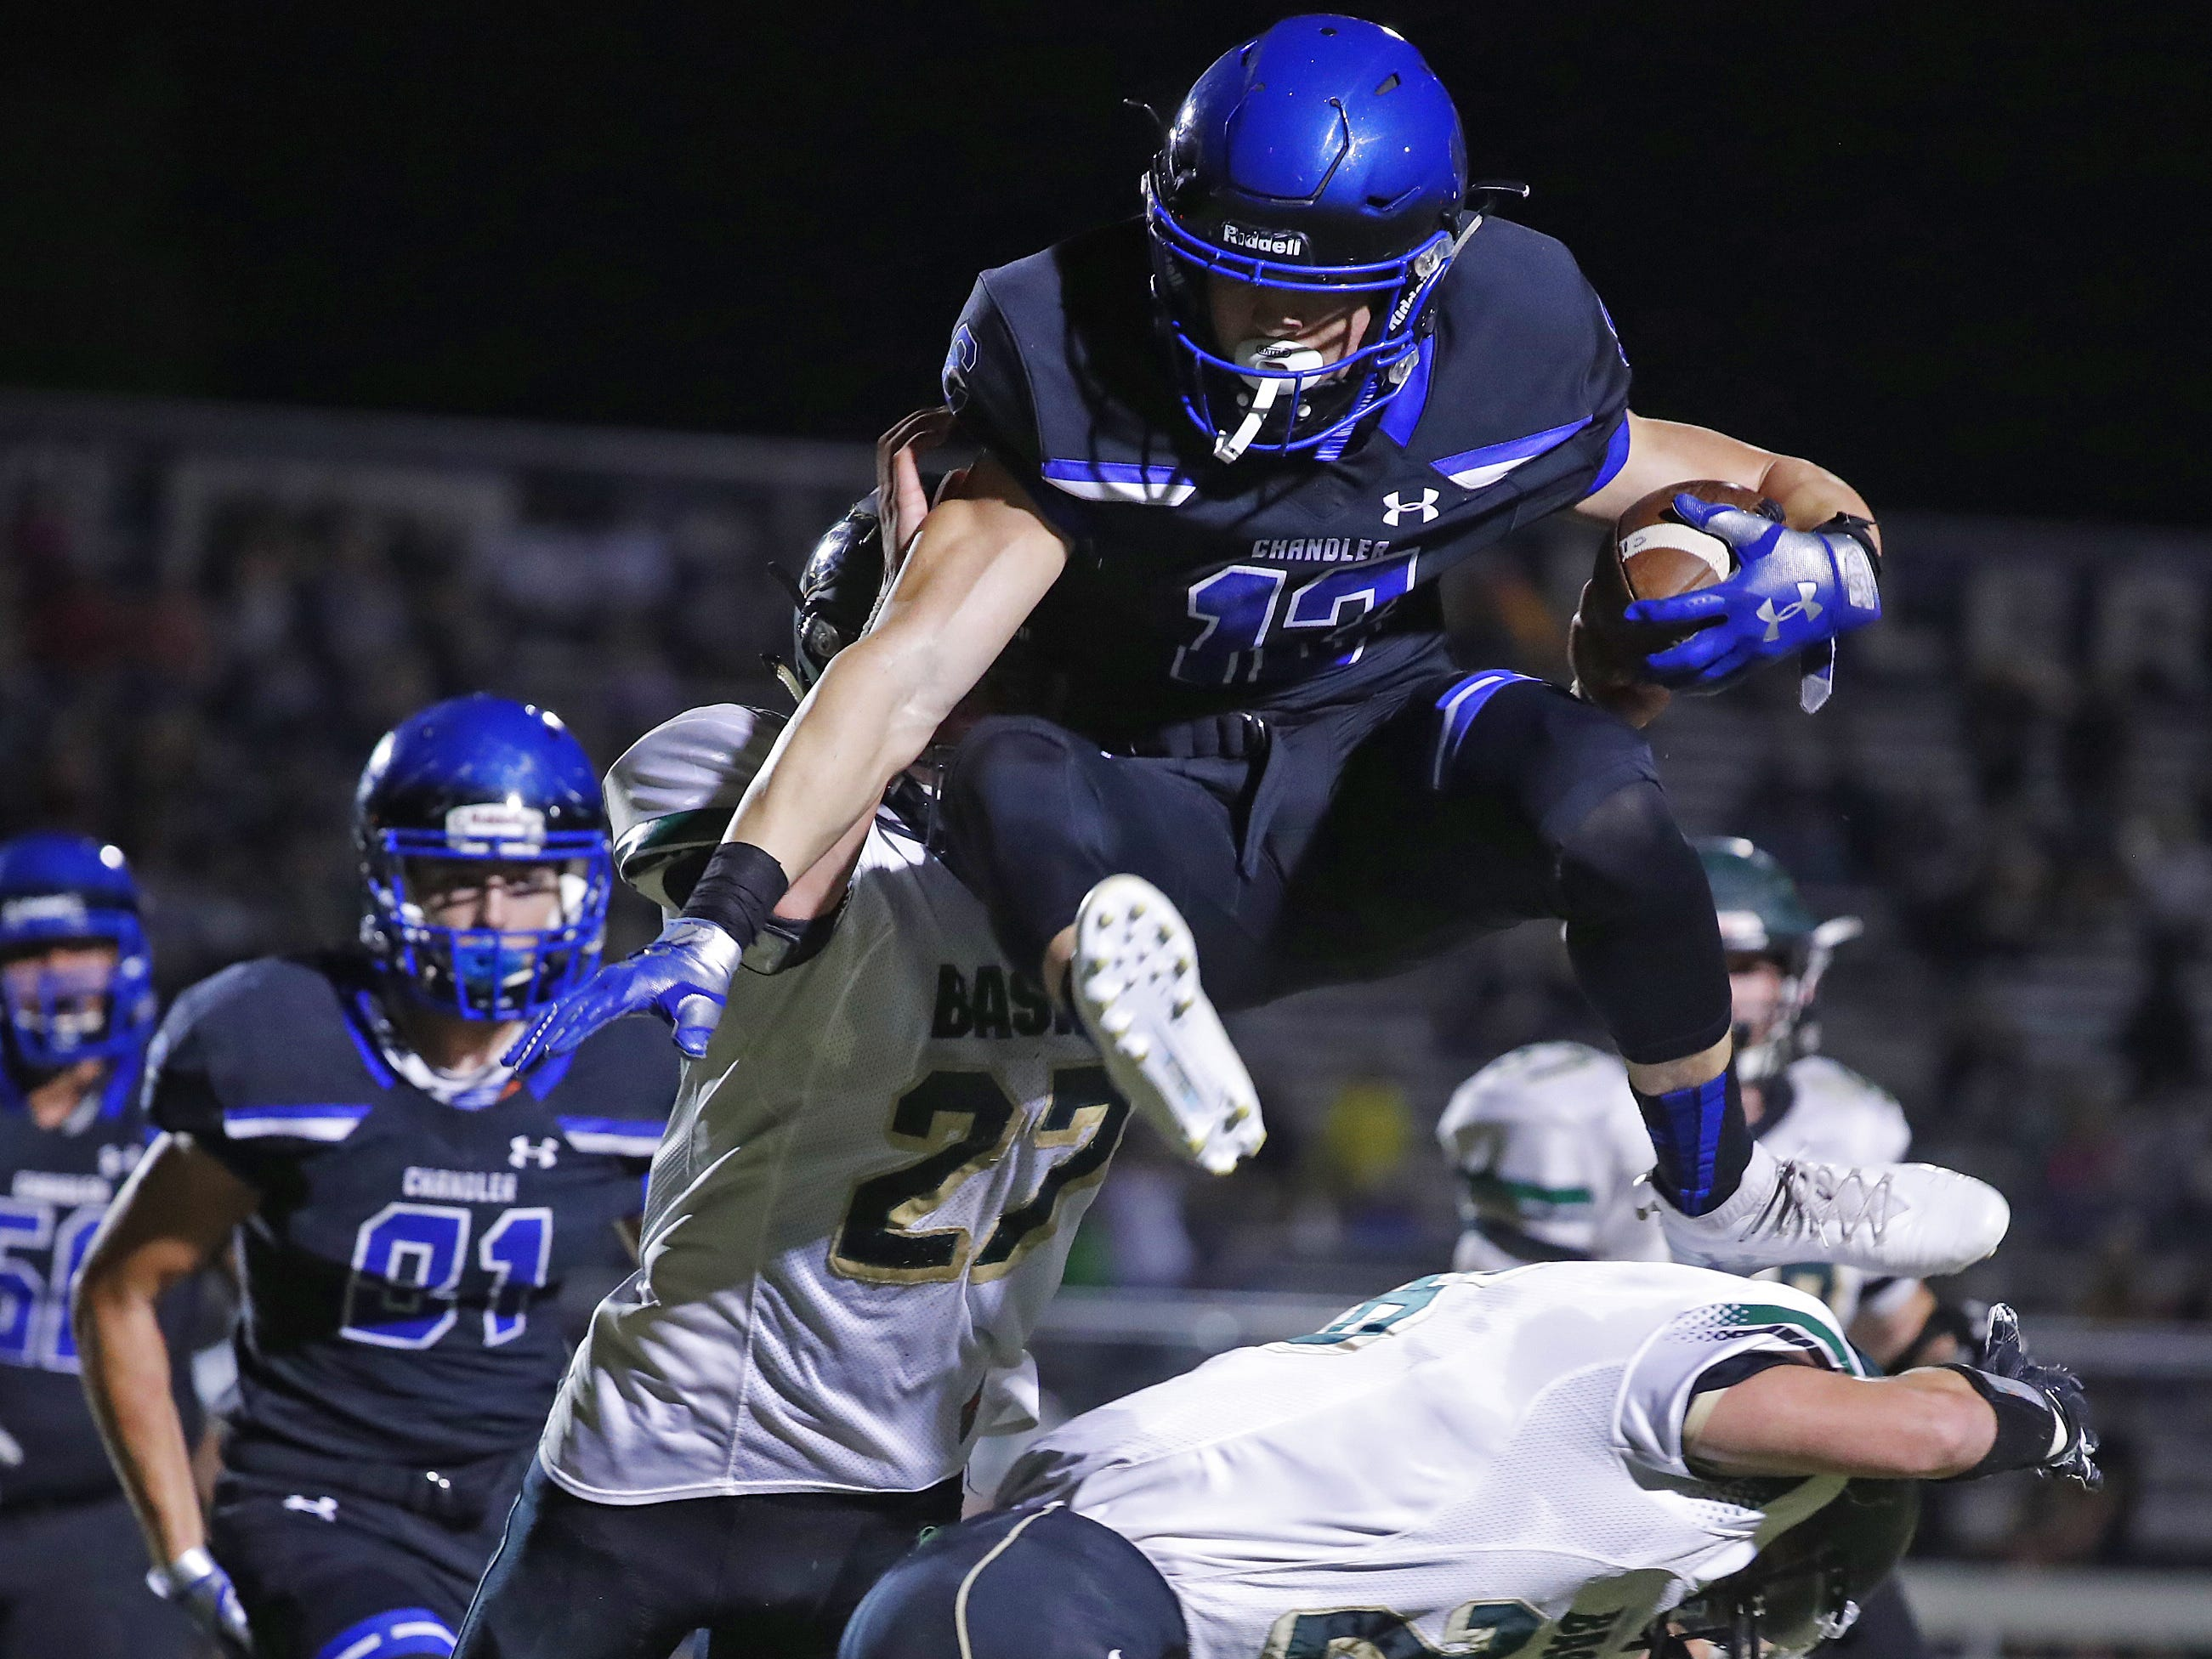 Chandler's Gunner Maldanado (13) hurdles a tackle from Basha's Dylan Quinn (25) at Chandler High School in Chandler, Ariz. on October 12, 2018. #azhsfb